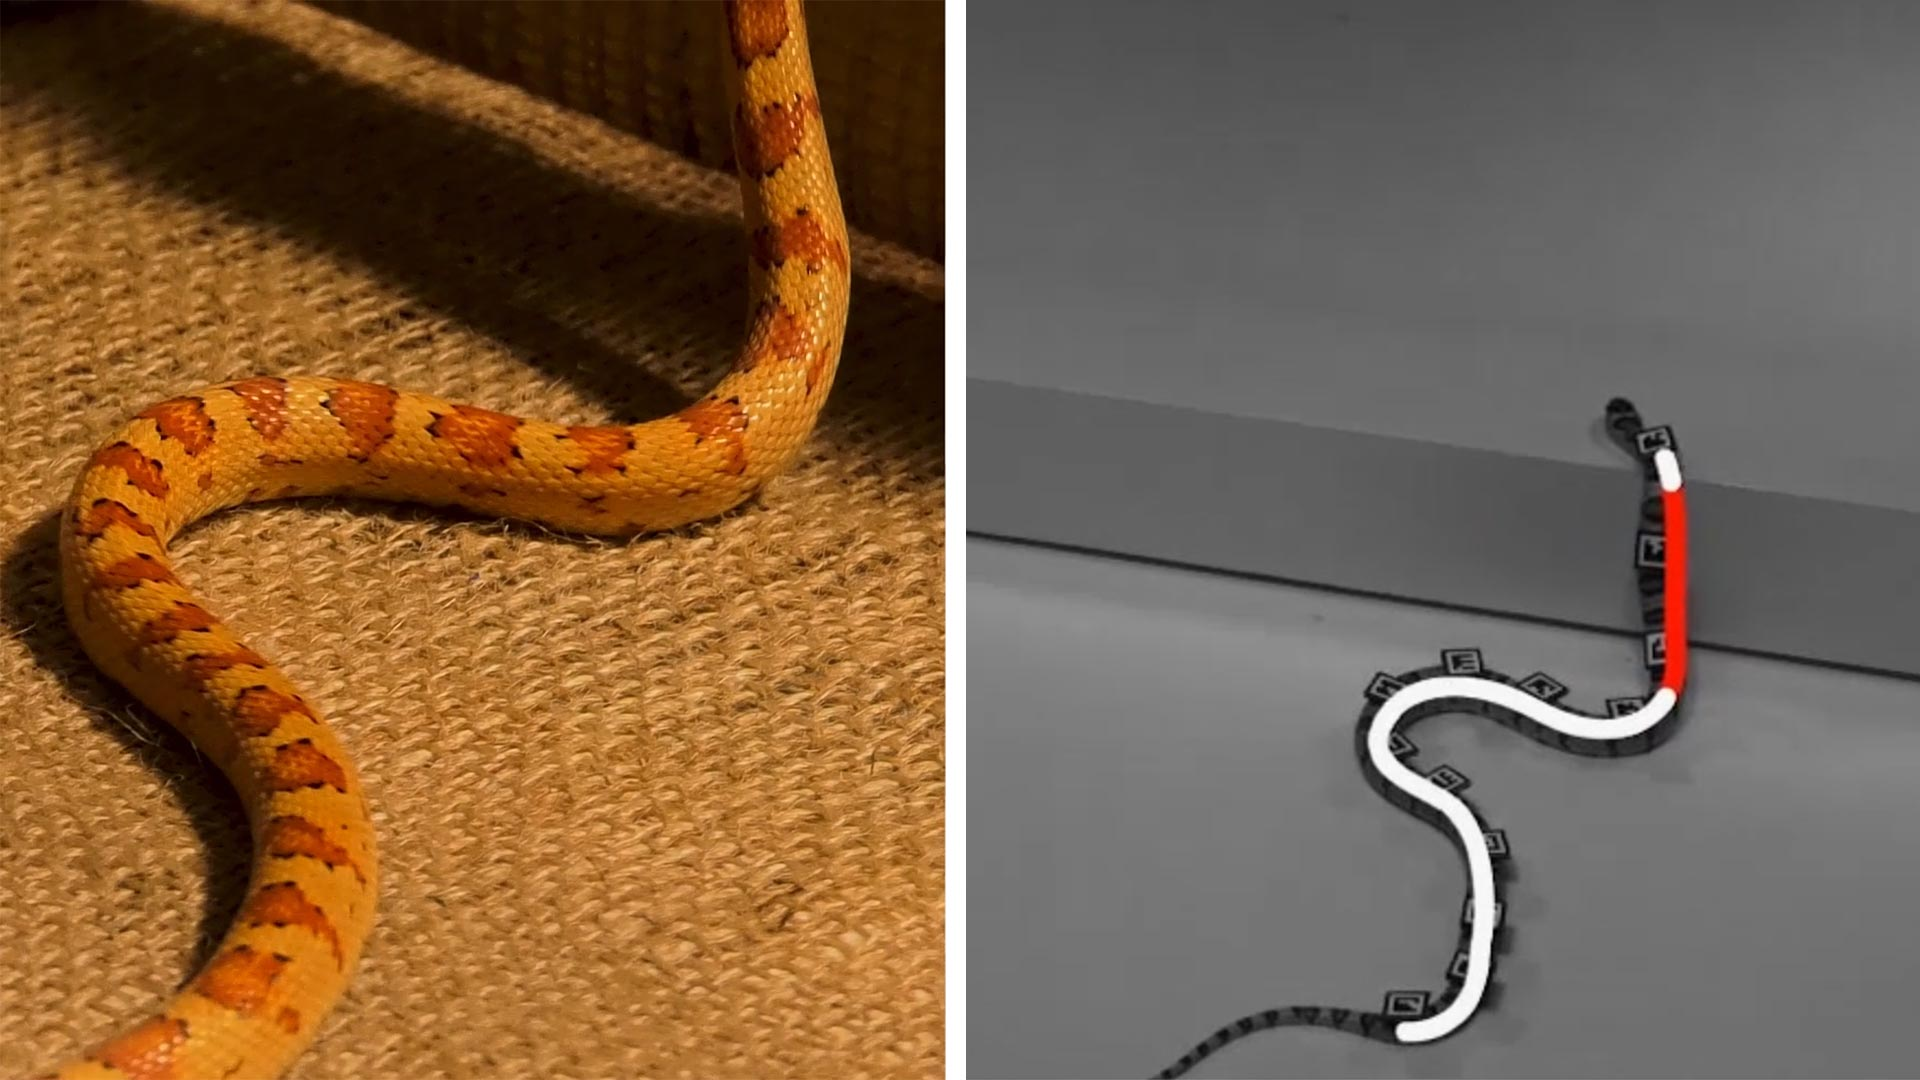 Slithering Snakes on a 2D Plane – Search and Rescue Robots Inspired by Snakes [Video] - SciTechDaily